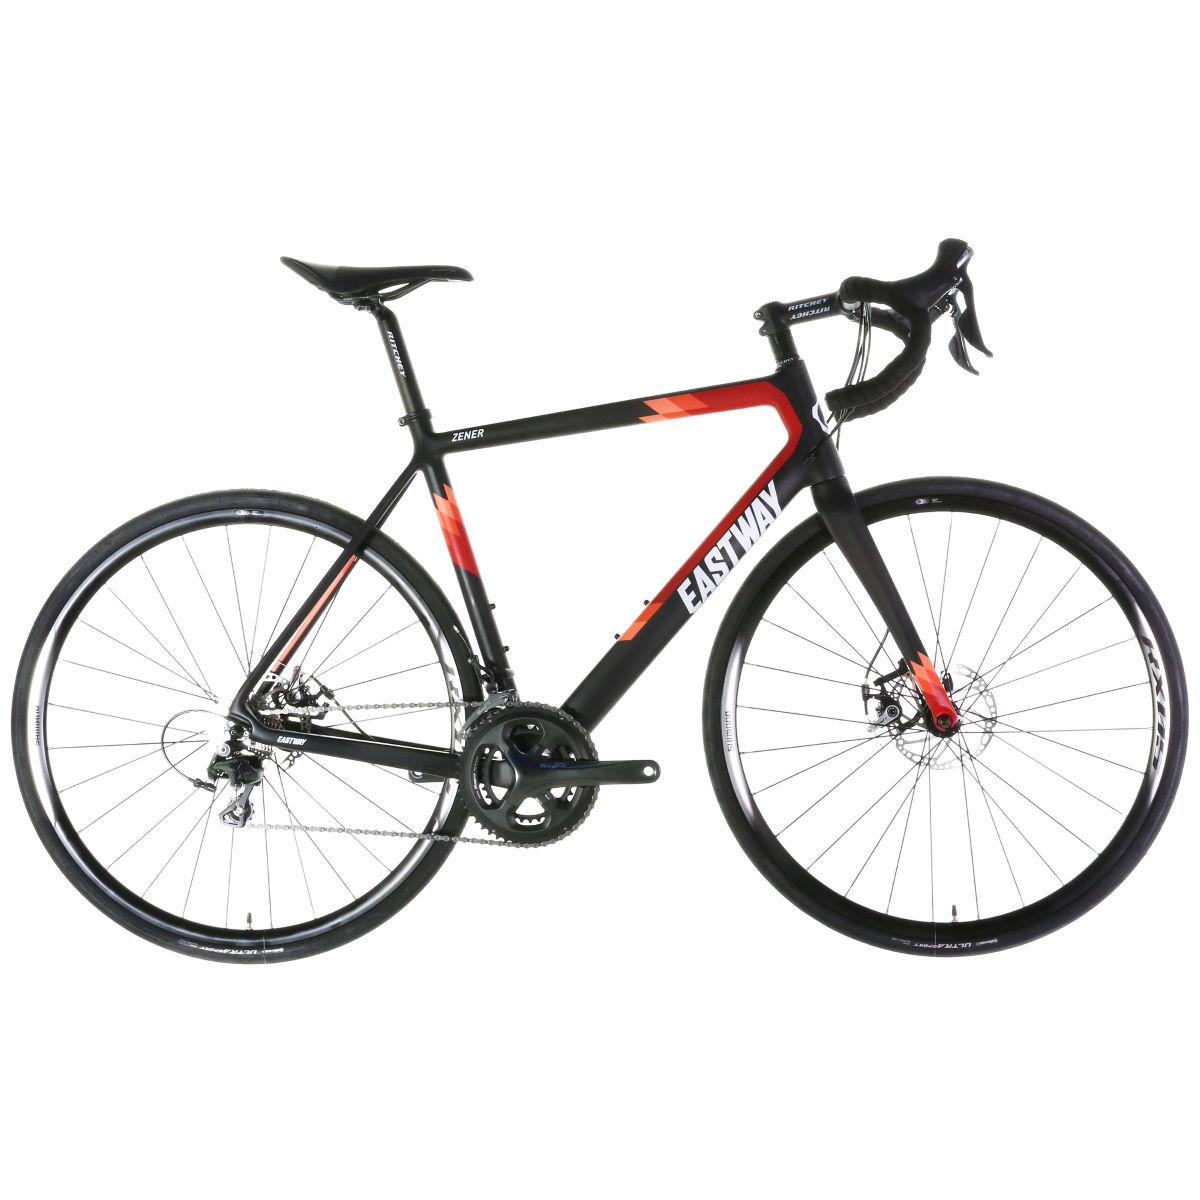 Bikes, cycling clothing, spares and accessories – in the ROSE online shop, you'll find everything you need for cycling. Ranging from the smallest screw through to high-end sport bikes. ★Individual service ★Fast delivery ★Over years of family tradition. Convince yourself!